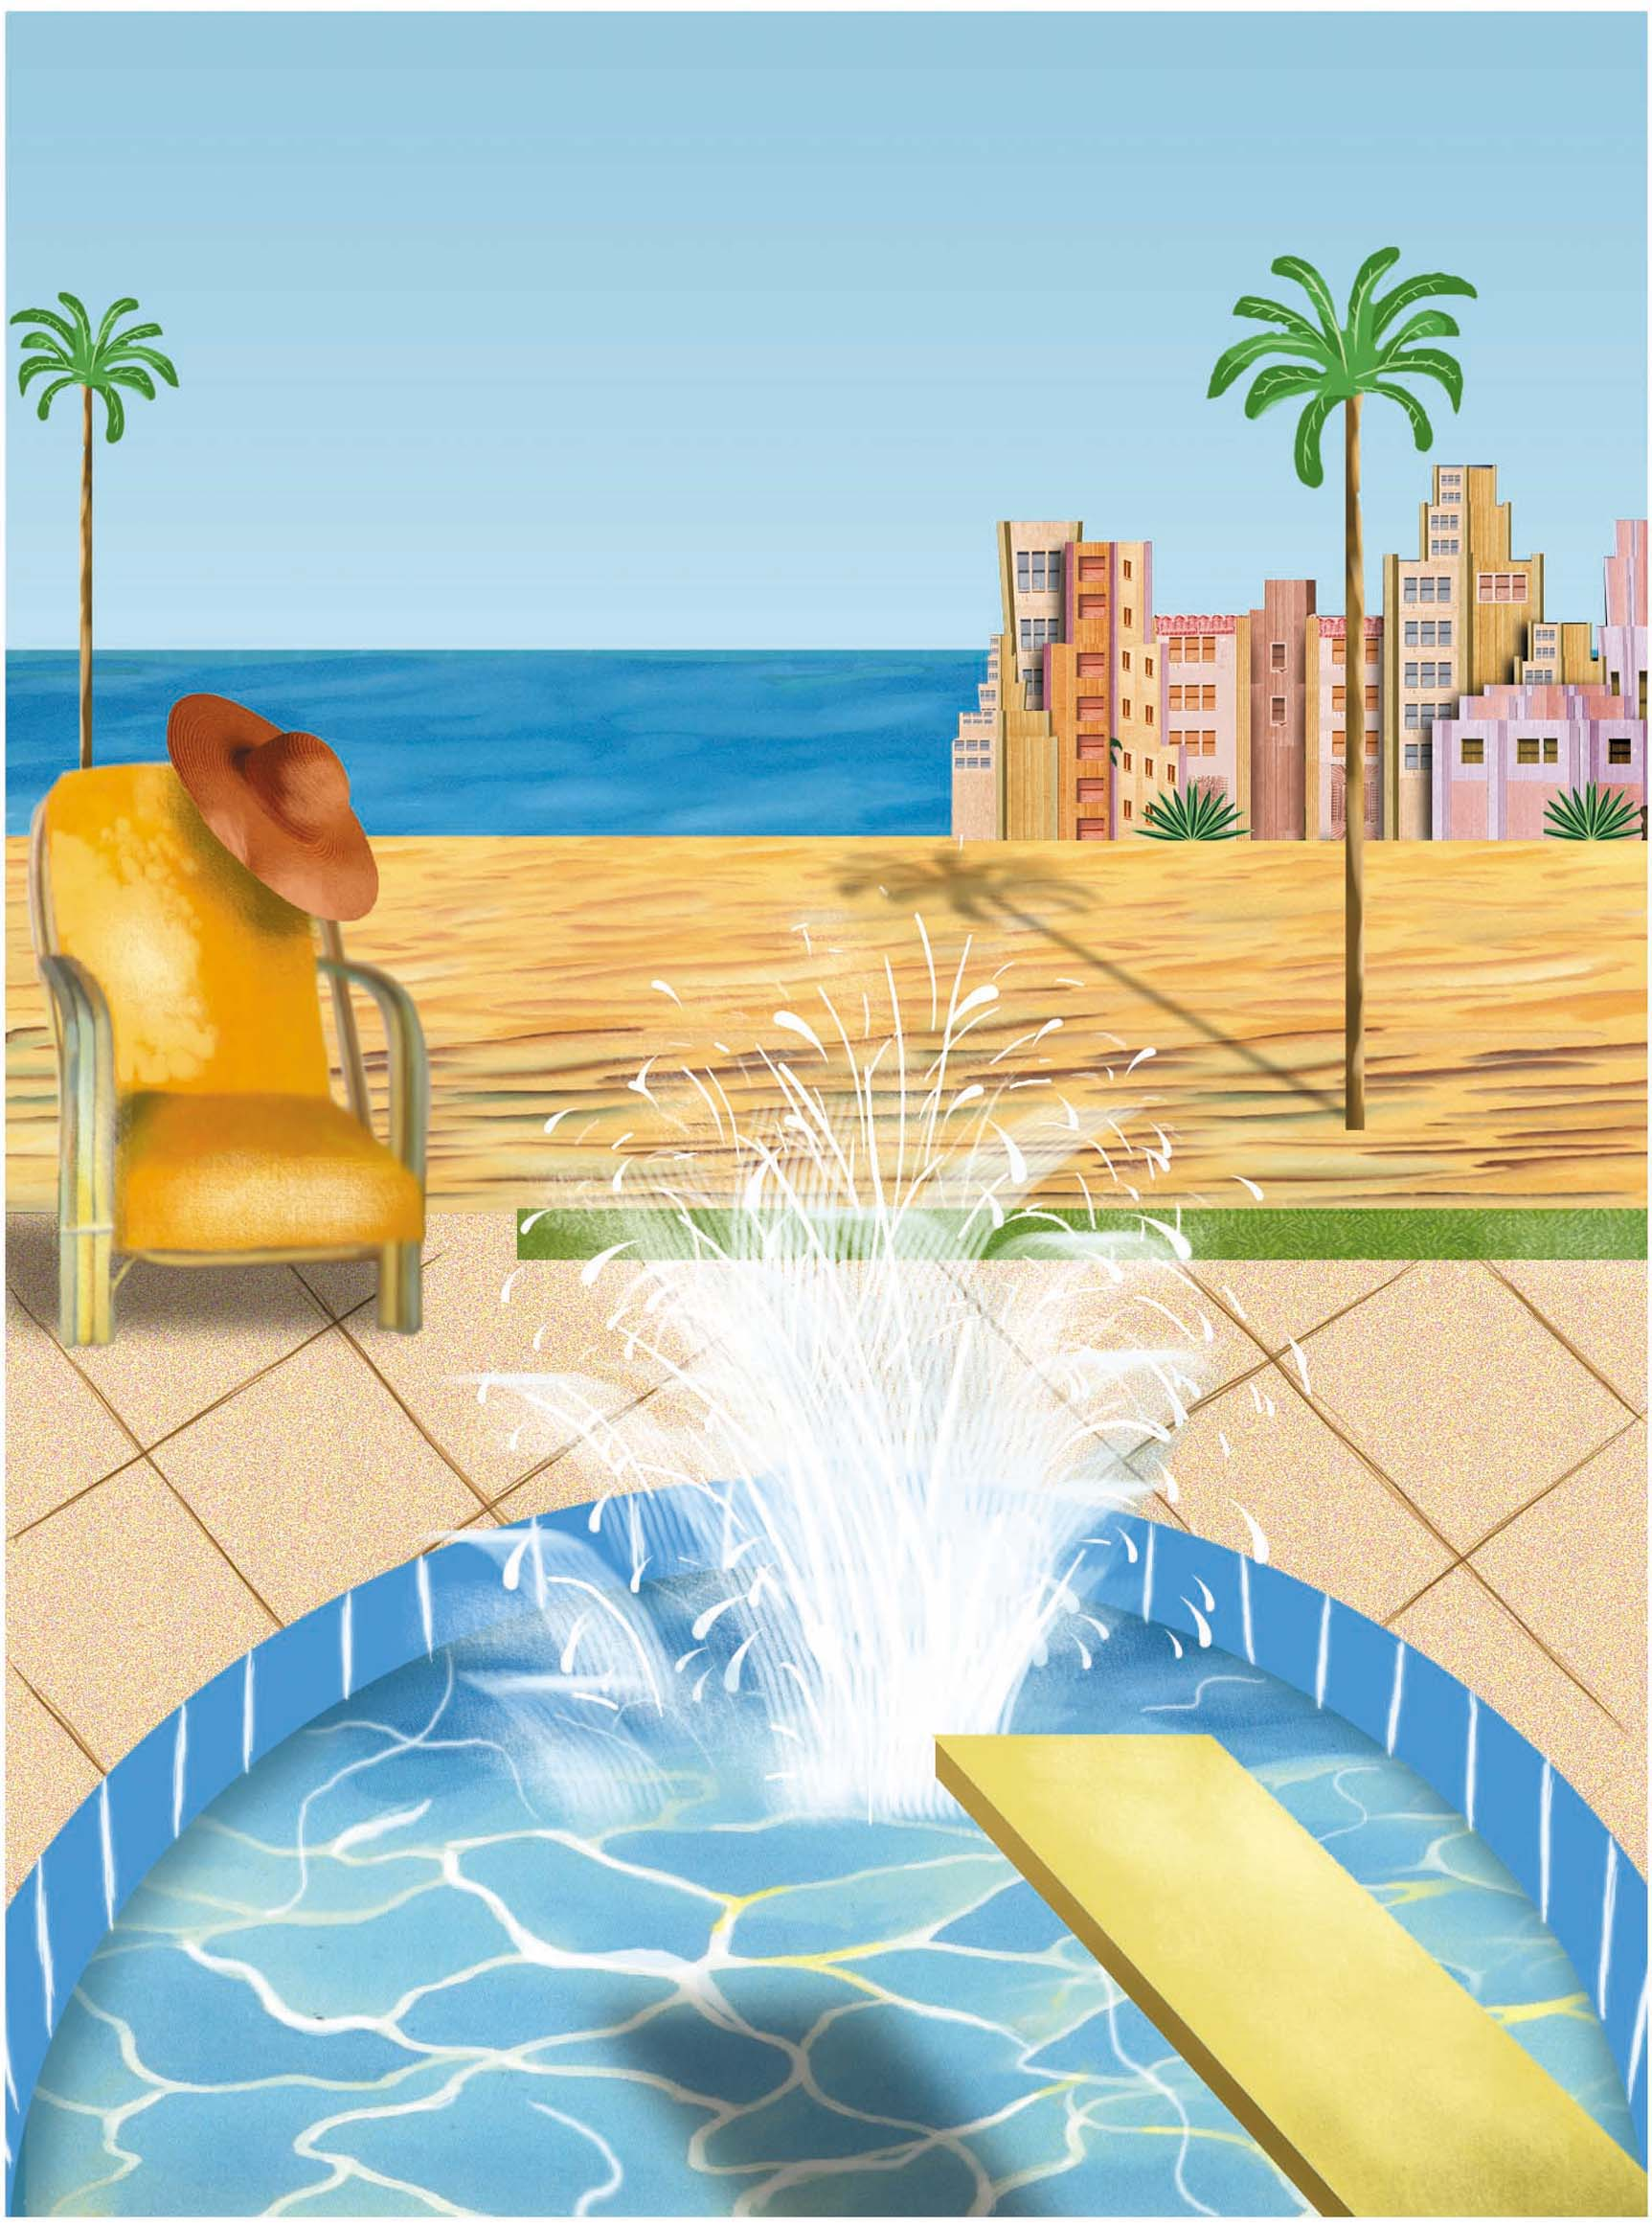 300 dpi 3 col x 7.75 in / 146x197 mm / 497x670 pixels Philip Brooker color illustration of a beachfront pool in Miami's South Beach. The Miami Herald 2003